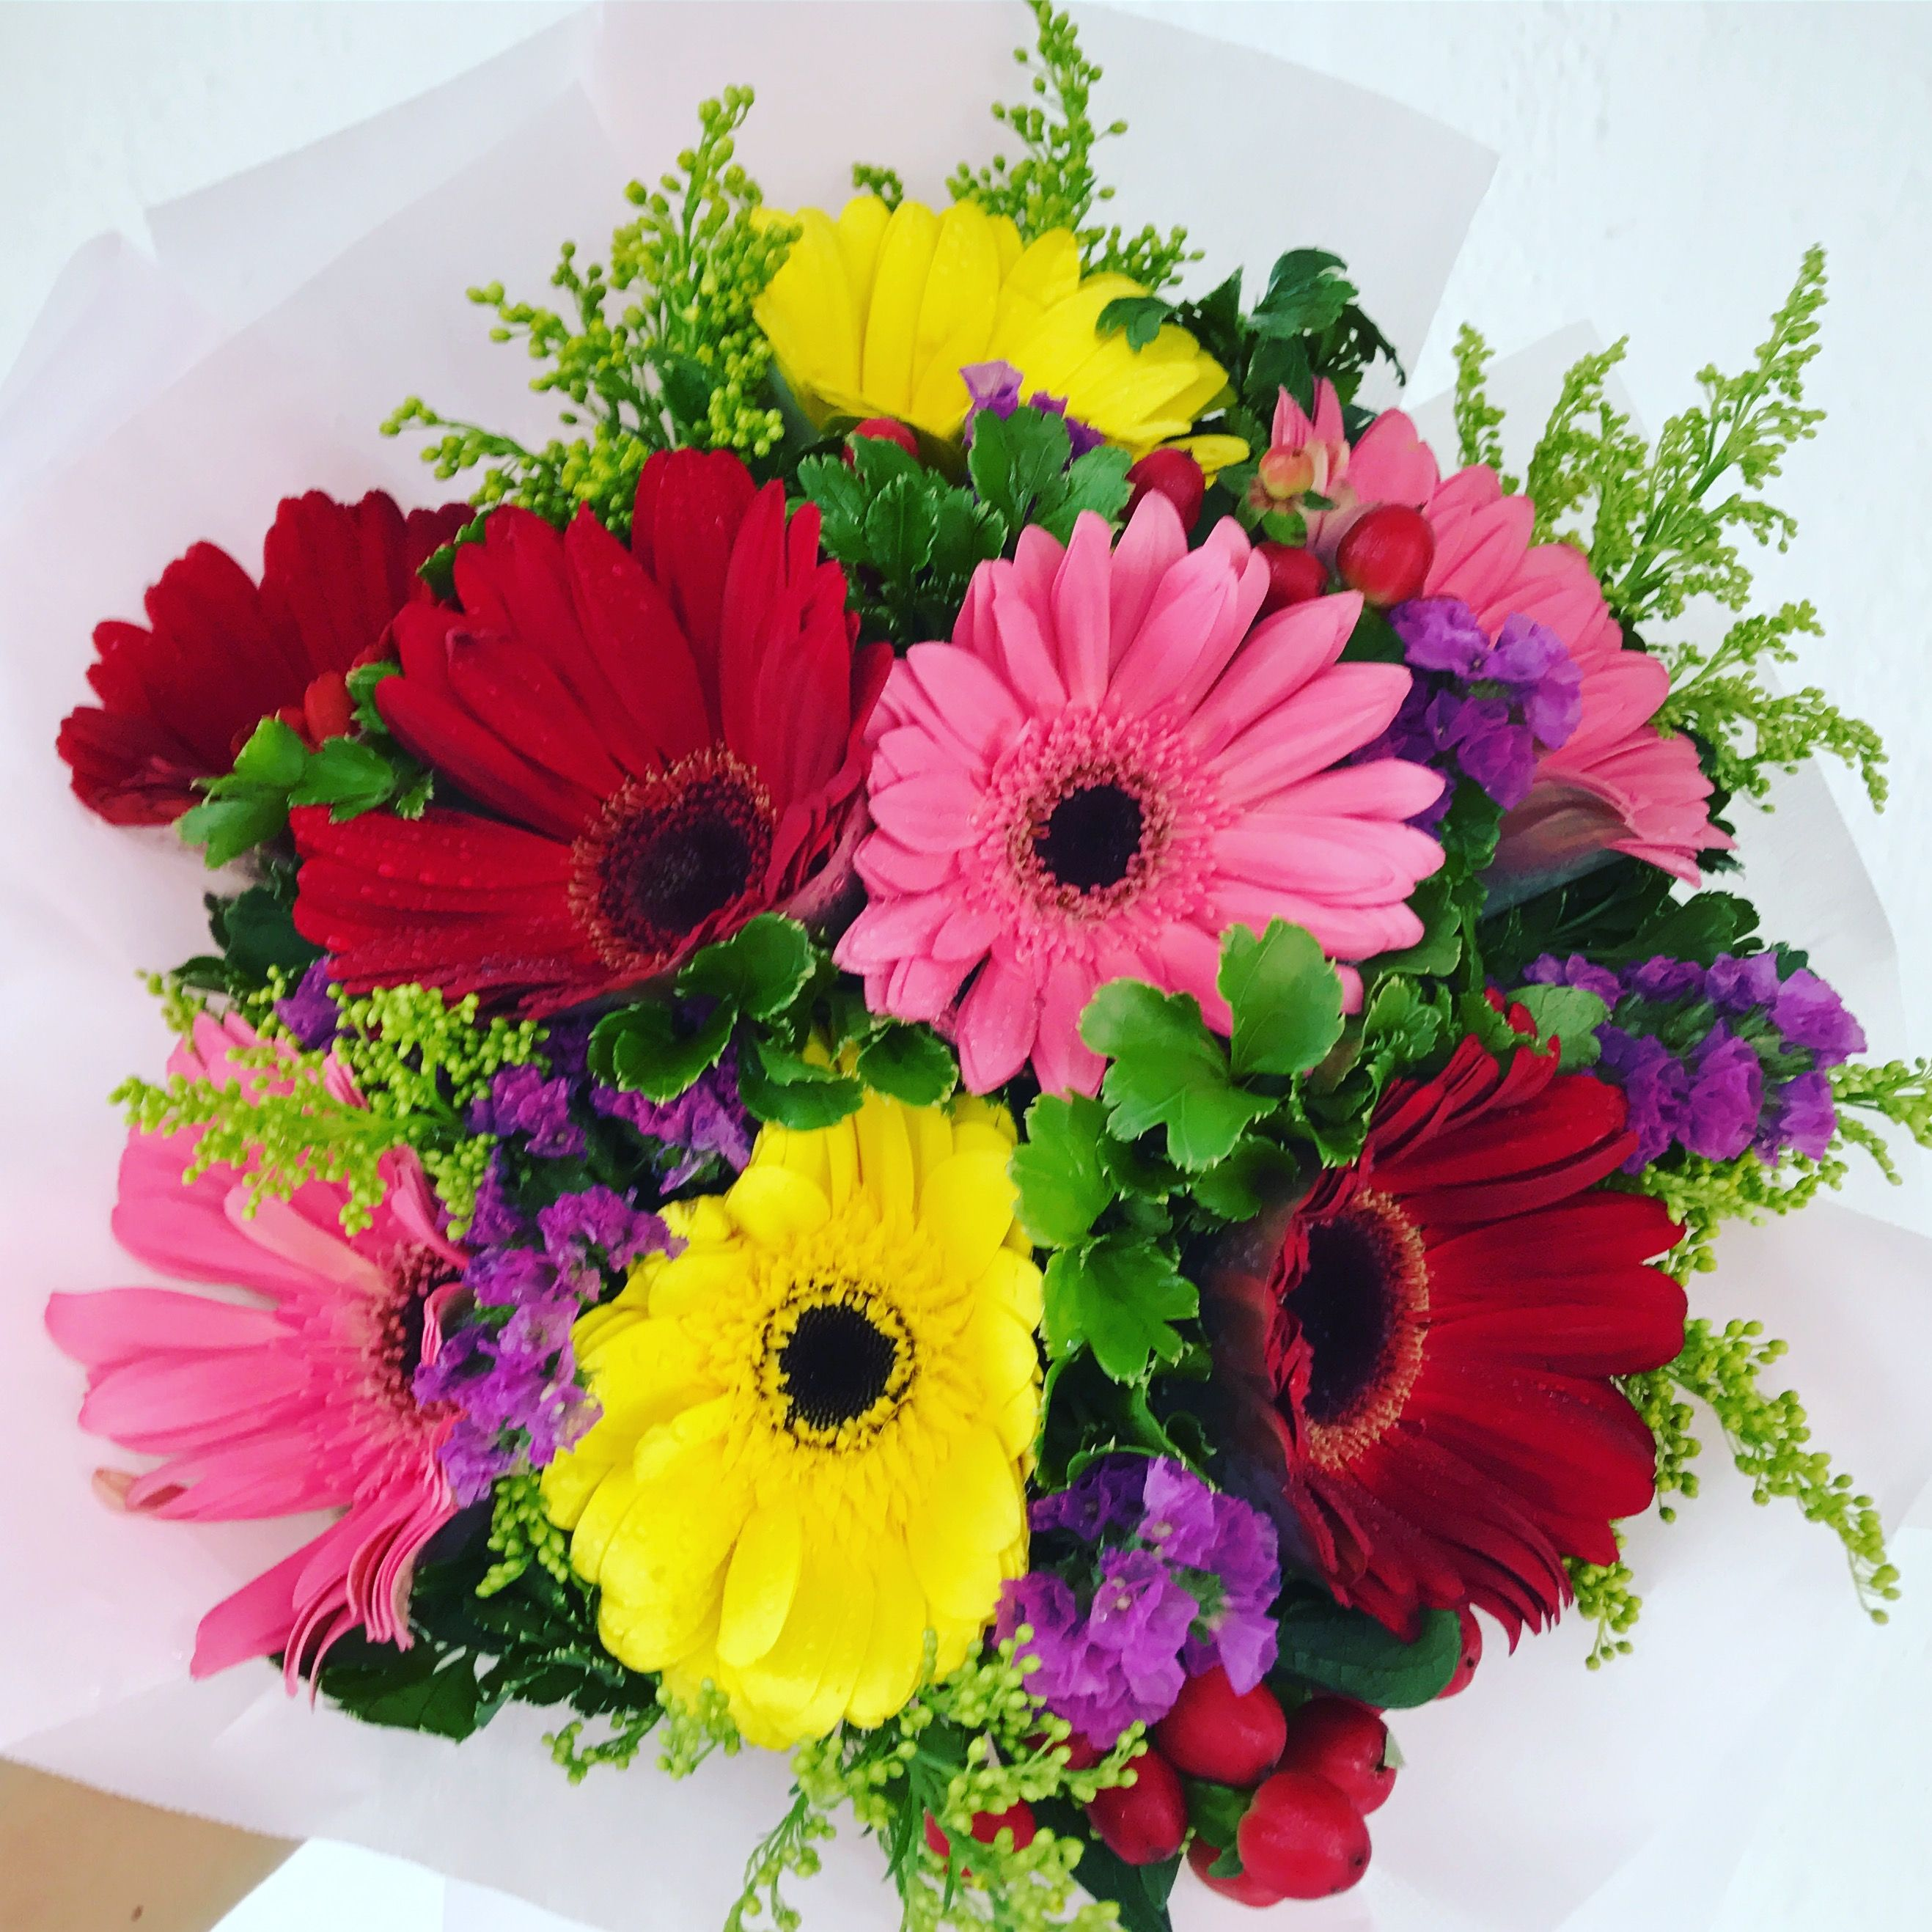 Send flowers and send a smile! Discover fresh flowers